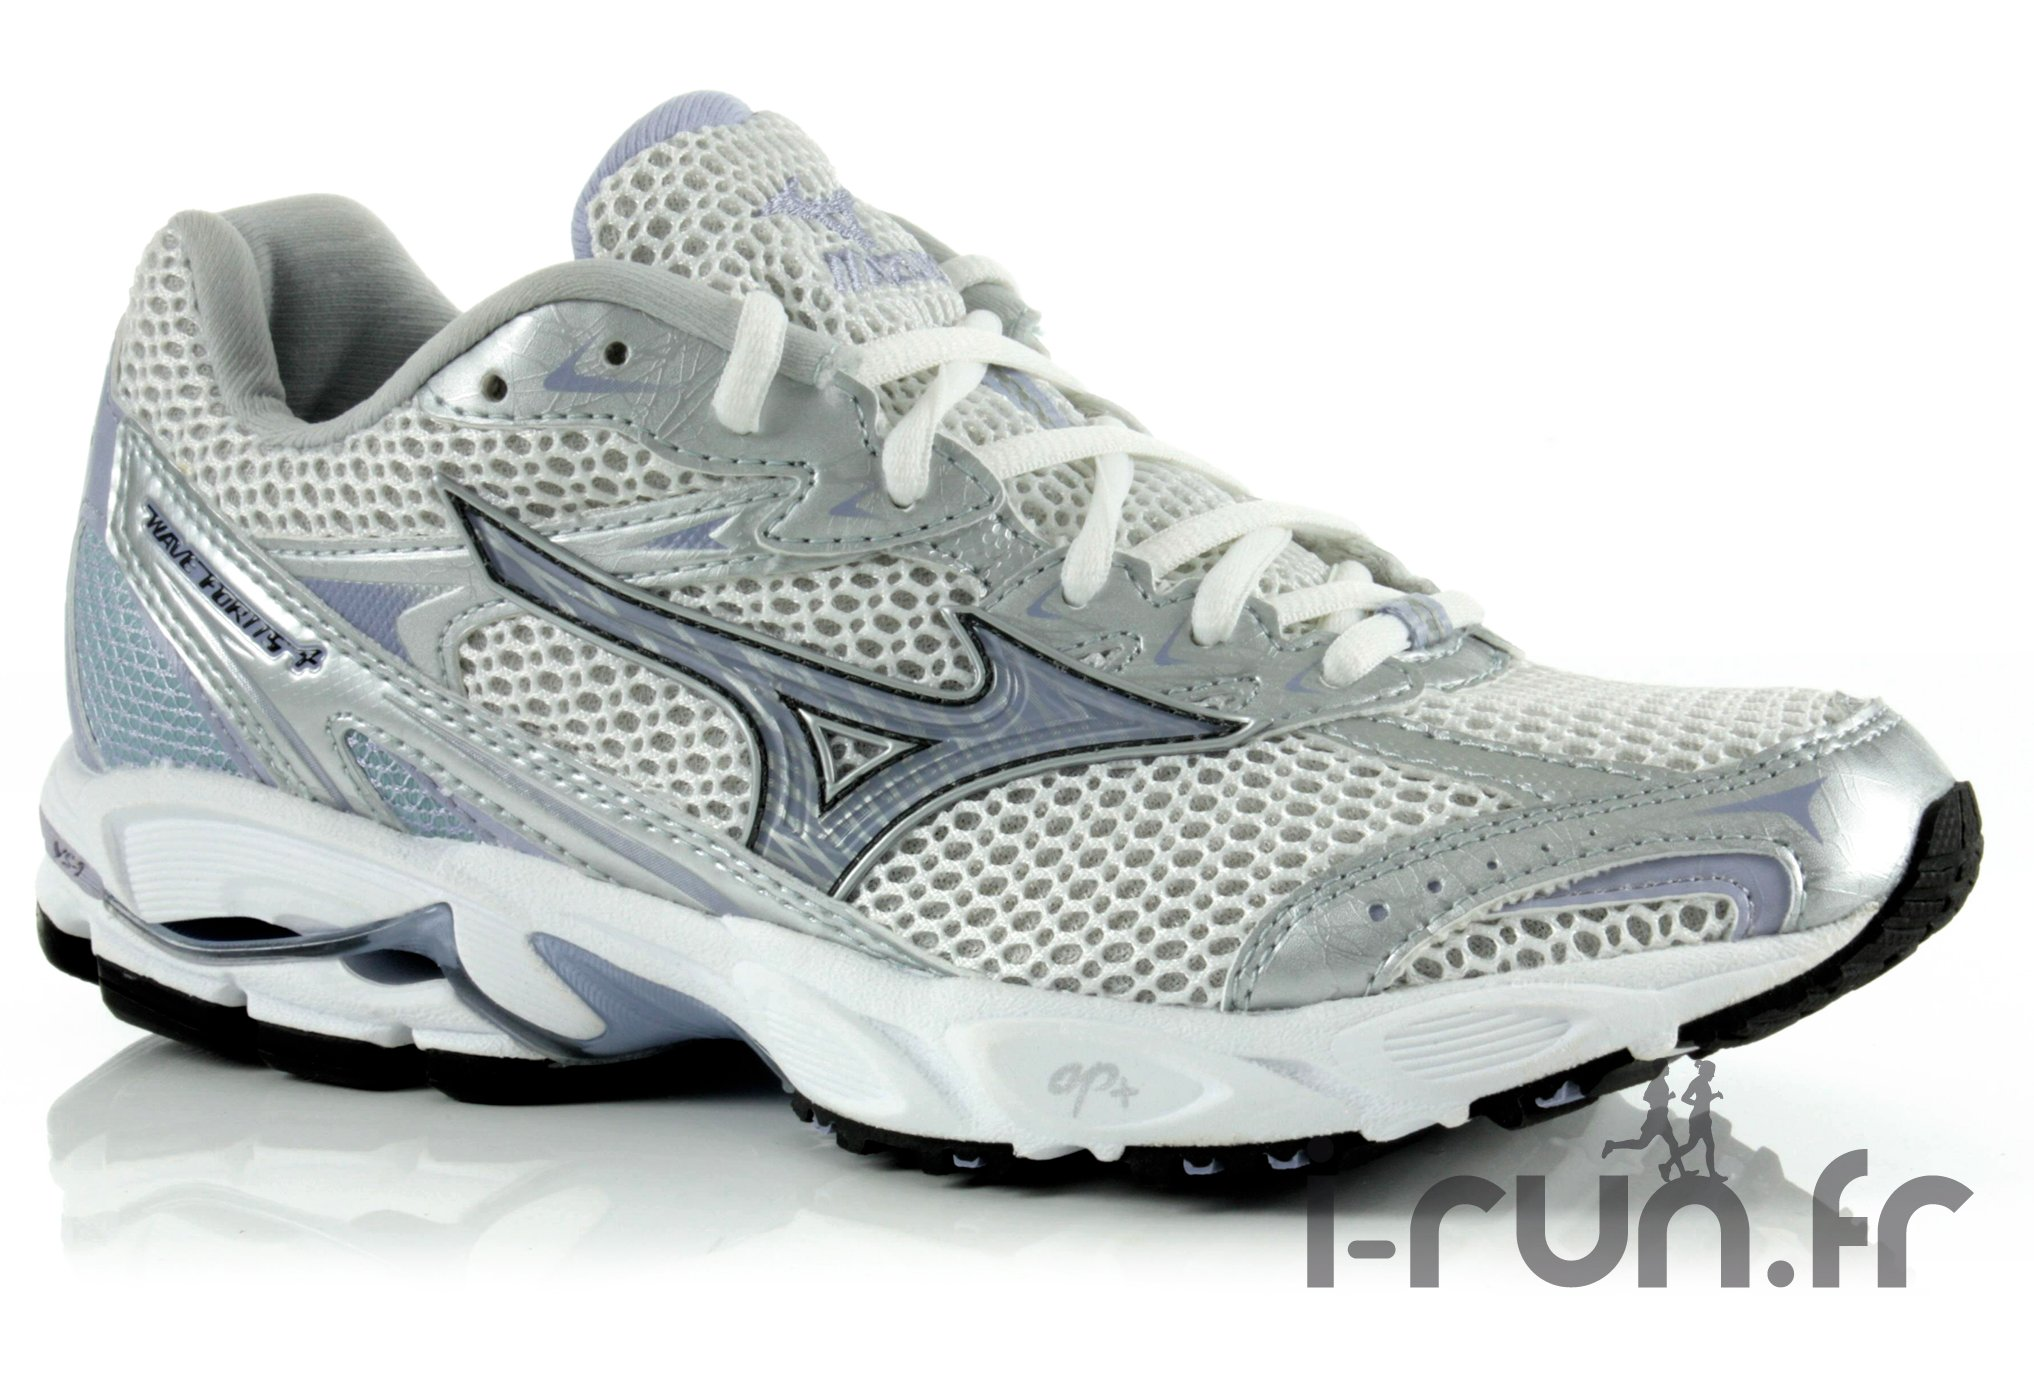 Mizuno Wave Fortis 4 W pas cher - Chaussures running femme Mizuno running  Wave Fortis 4 W en promo afb89e3fe176a